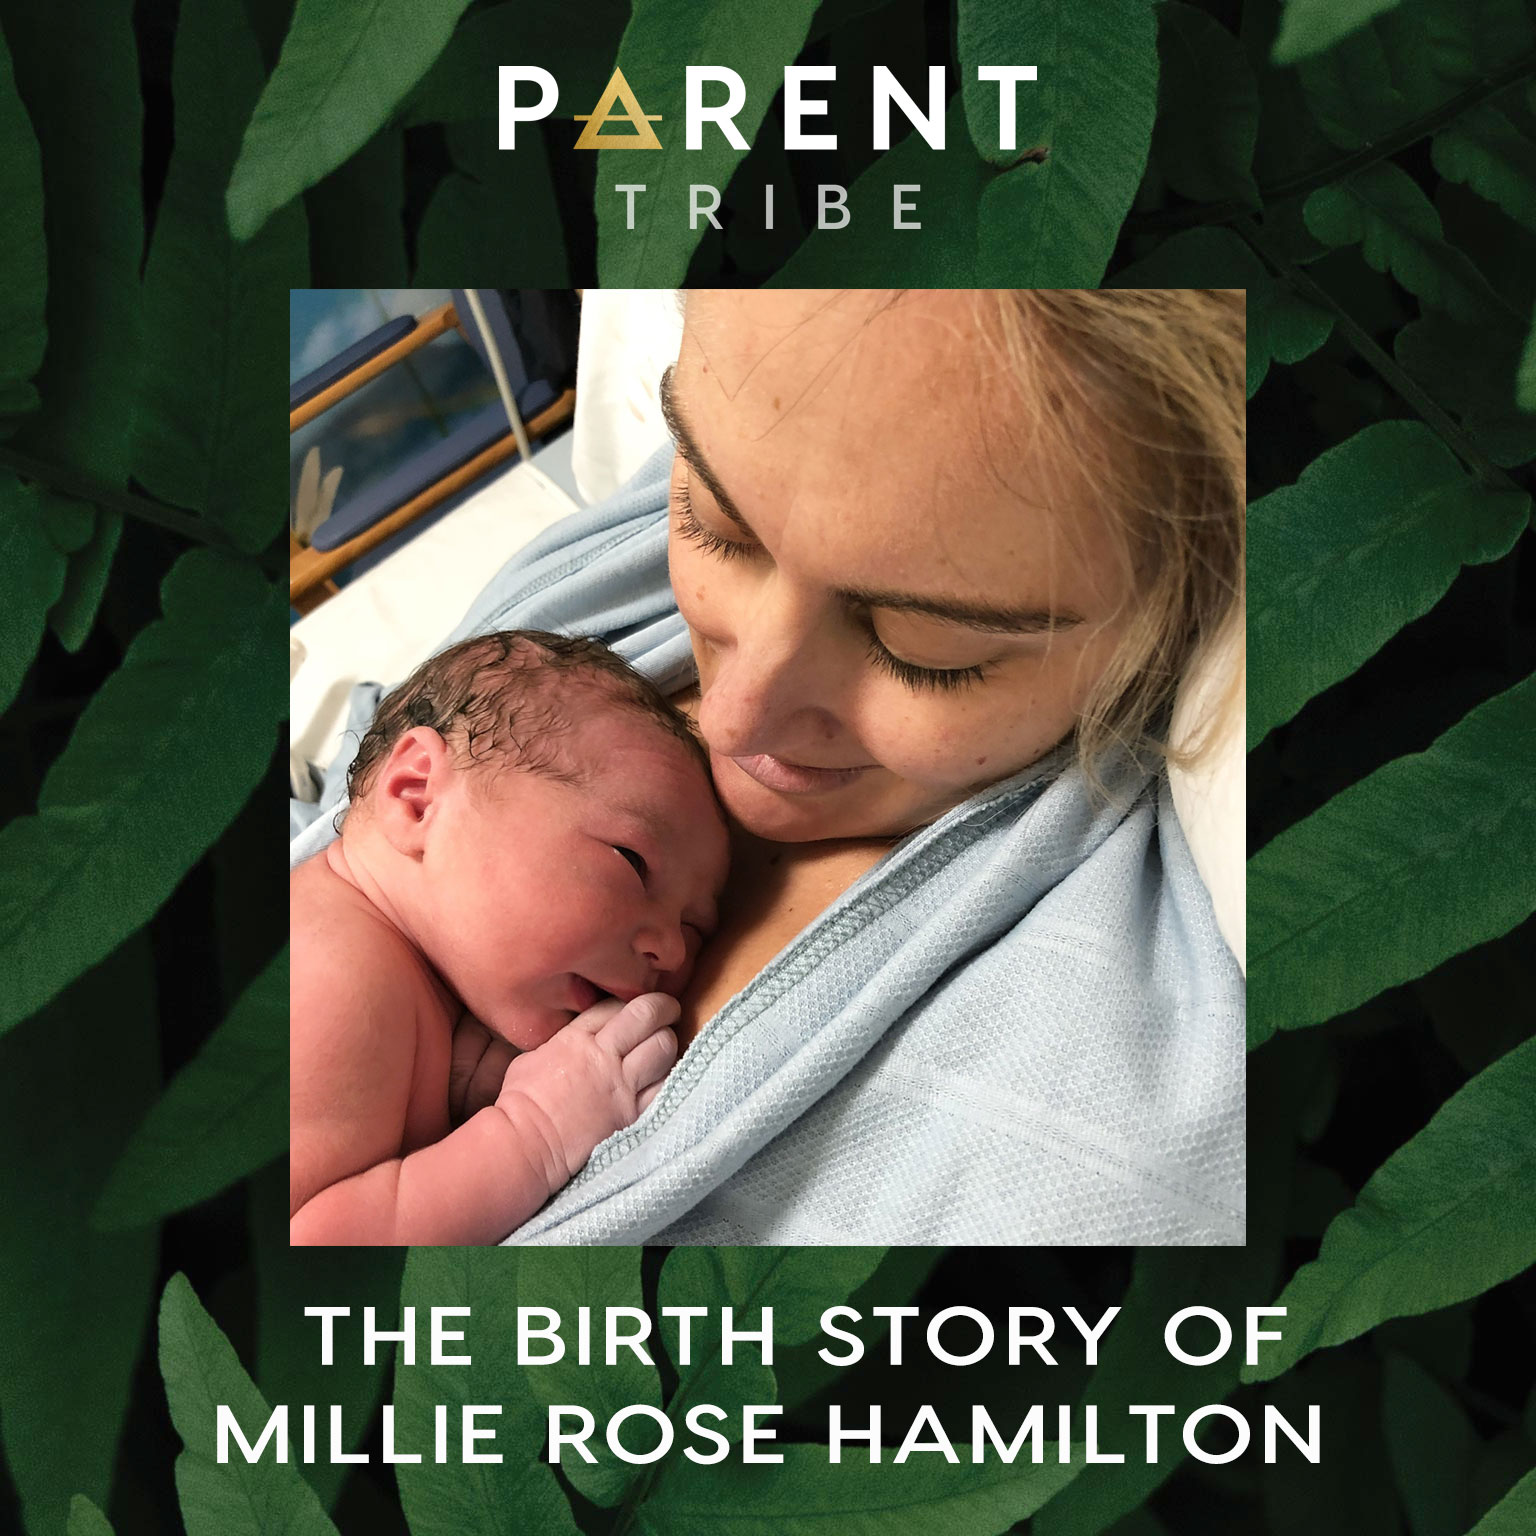 Millie-Rose-Hamilton Hospital birth.jpg